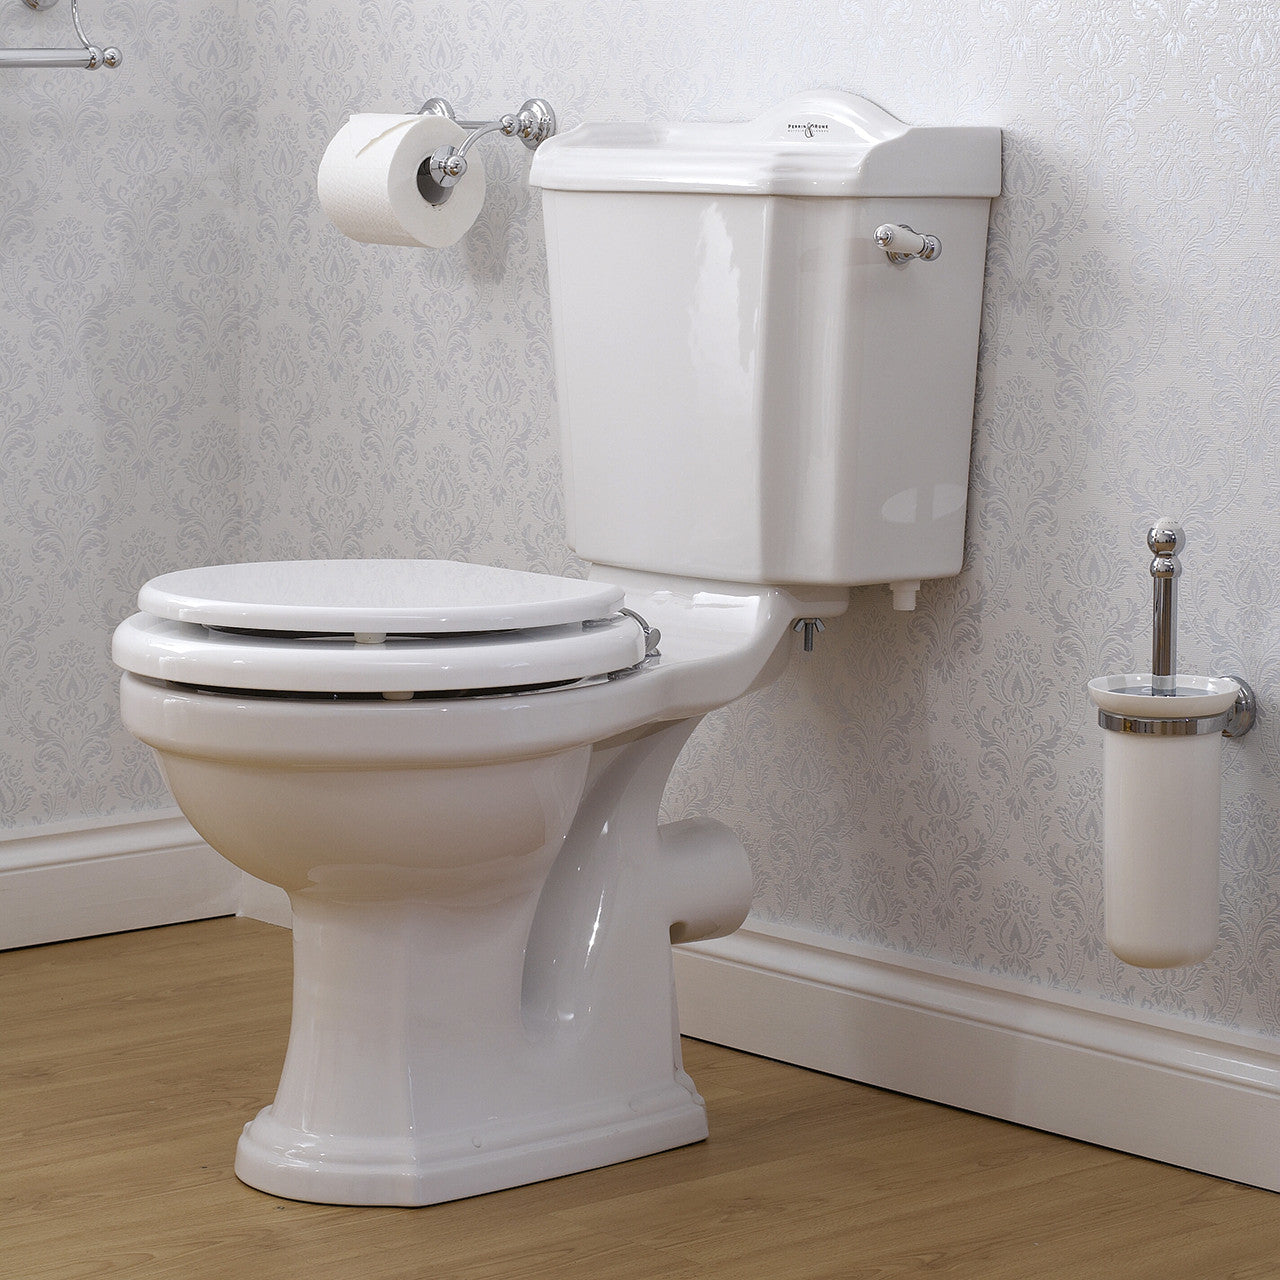 perrin amp rowe edwardian close coupled wc: perrin rowe lifestyle